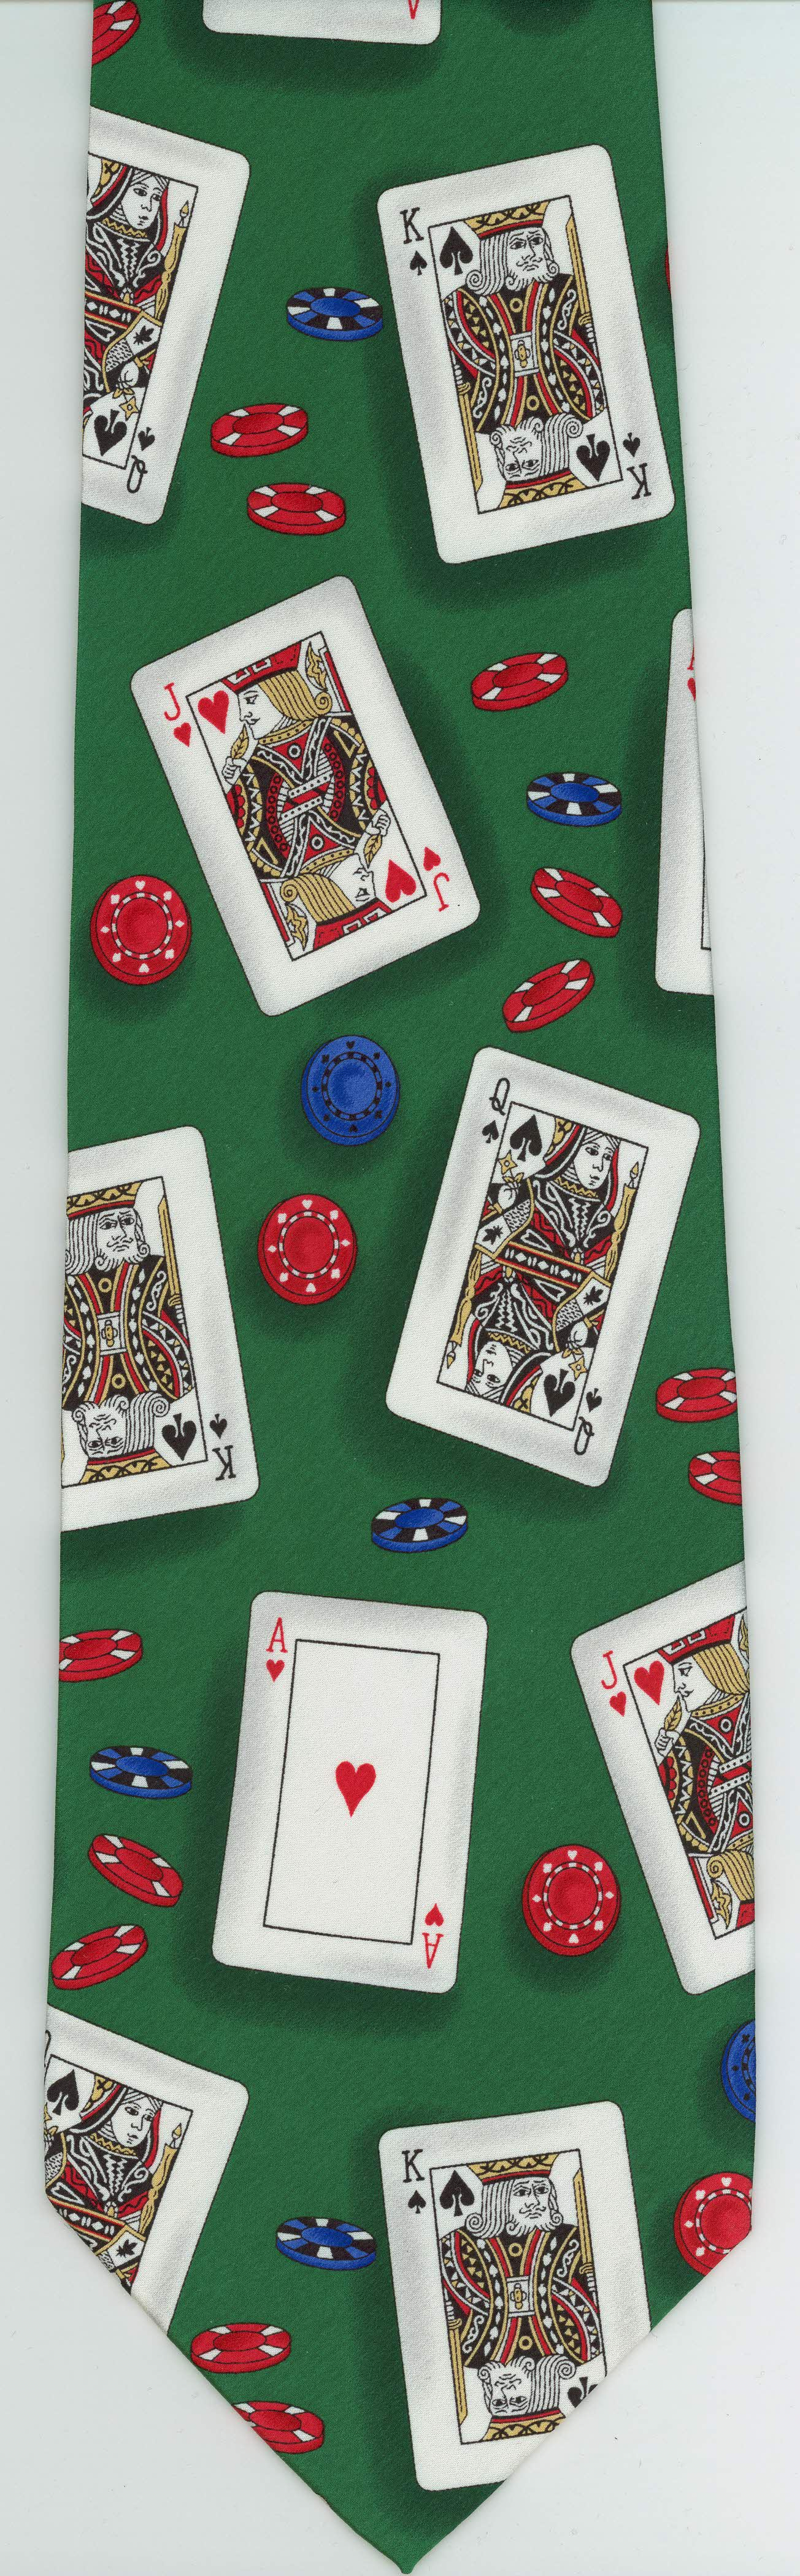 094 Card & Chips (G)_Page_1.jpg